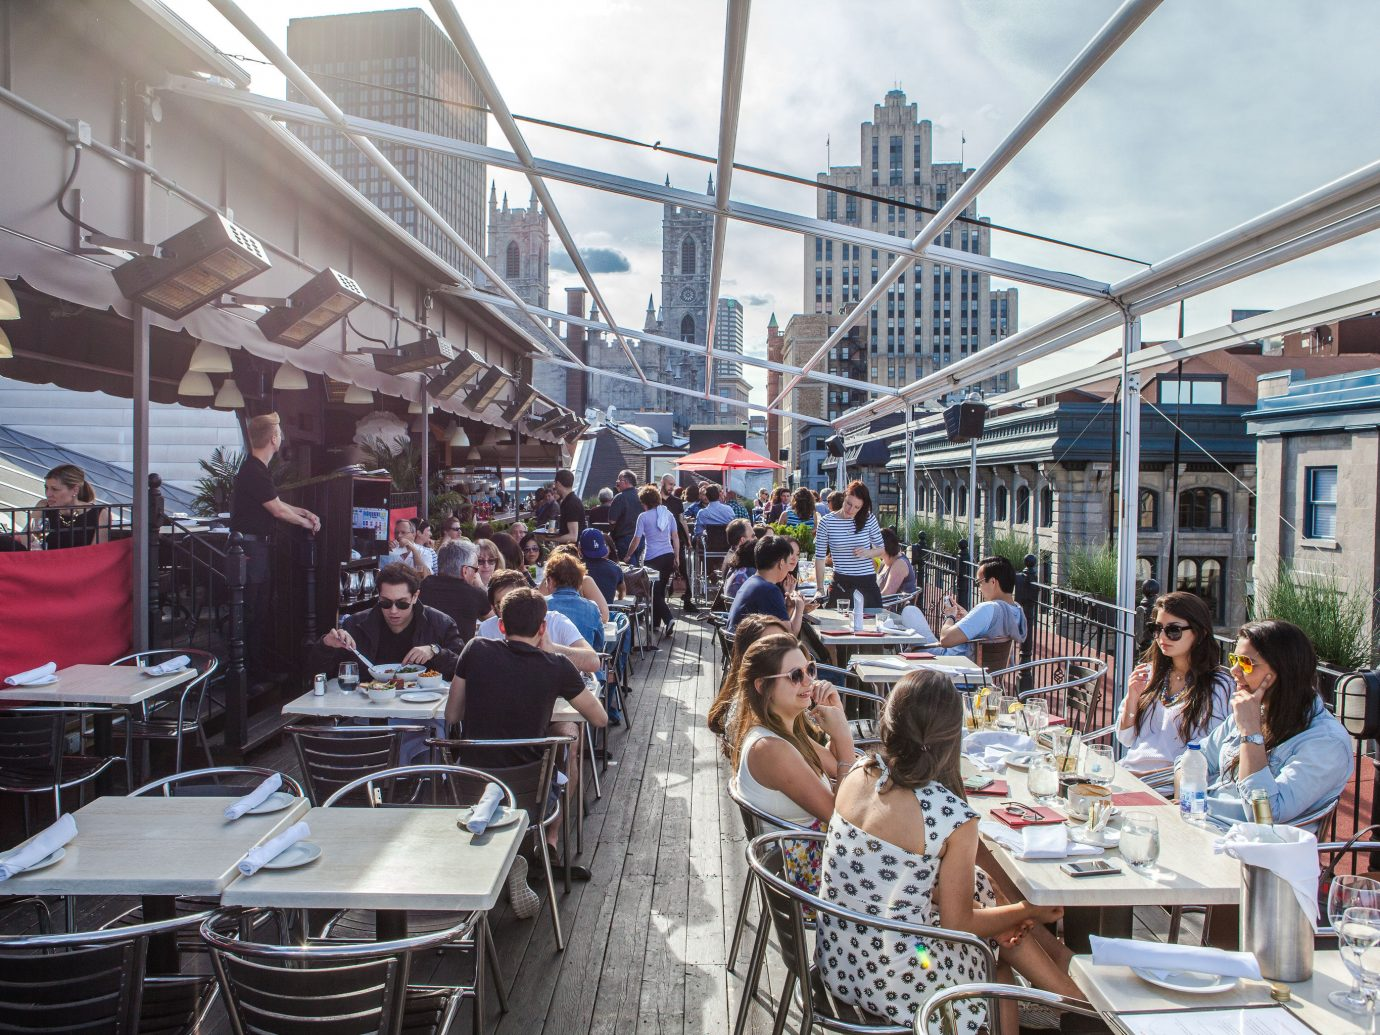 Trip Ideas building outdoor restaurant people City crowd